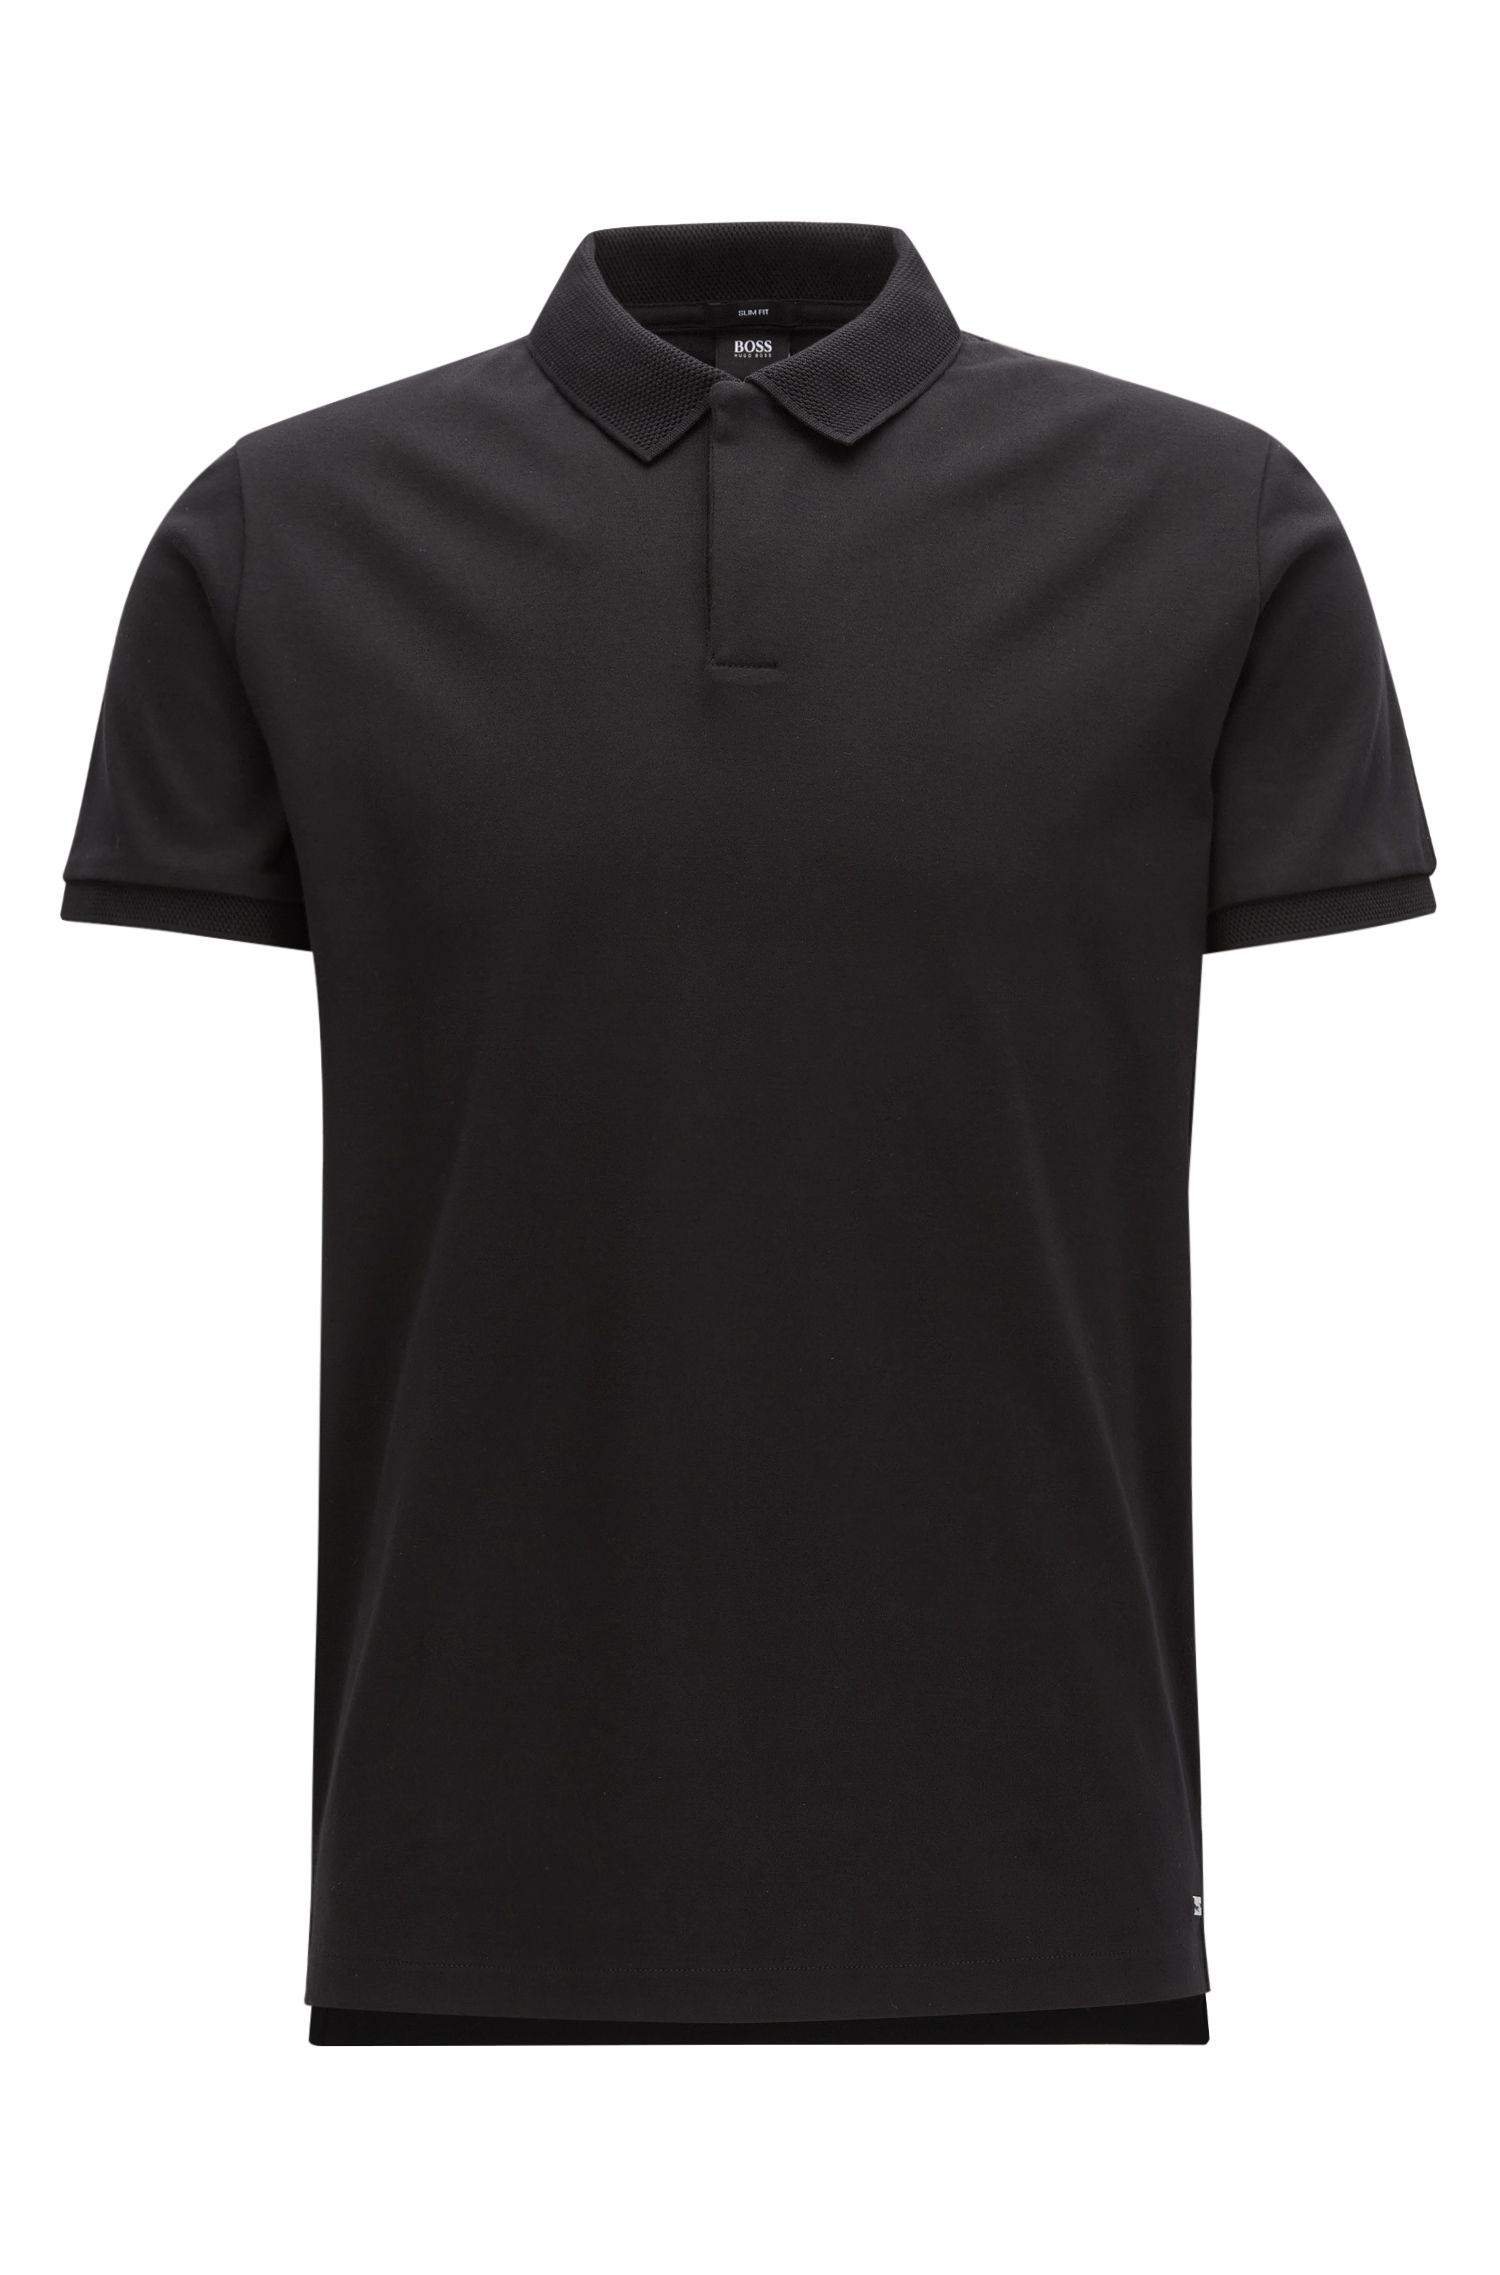 Slim-fit polo shirt in interlock cotton from the Mercedes-Benz Collection